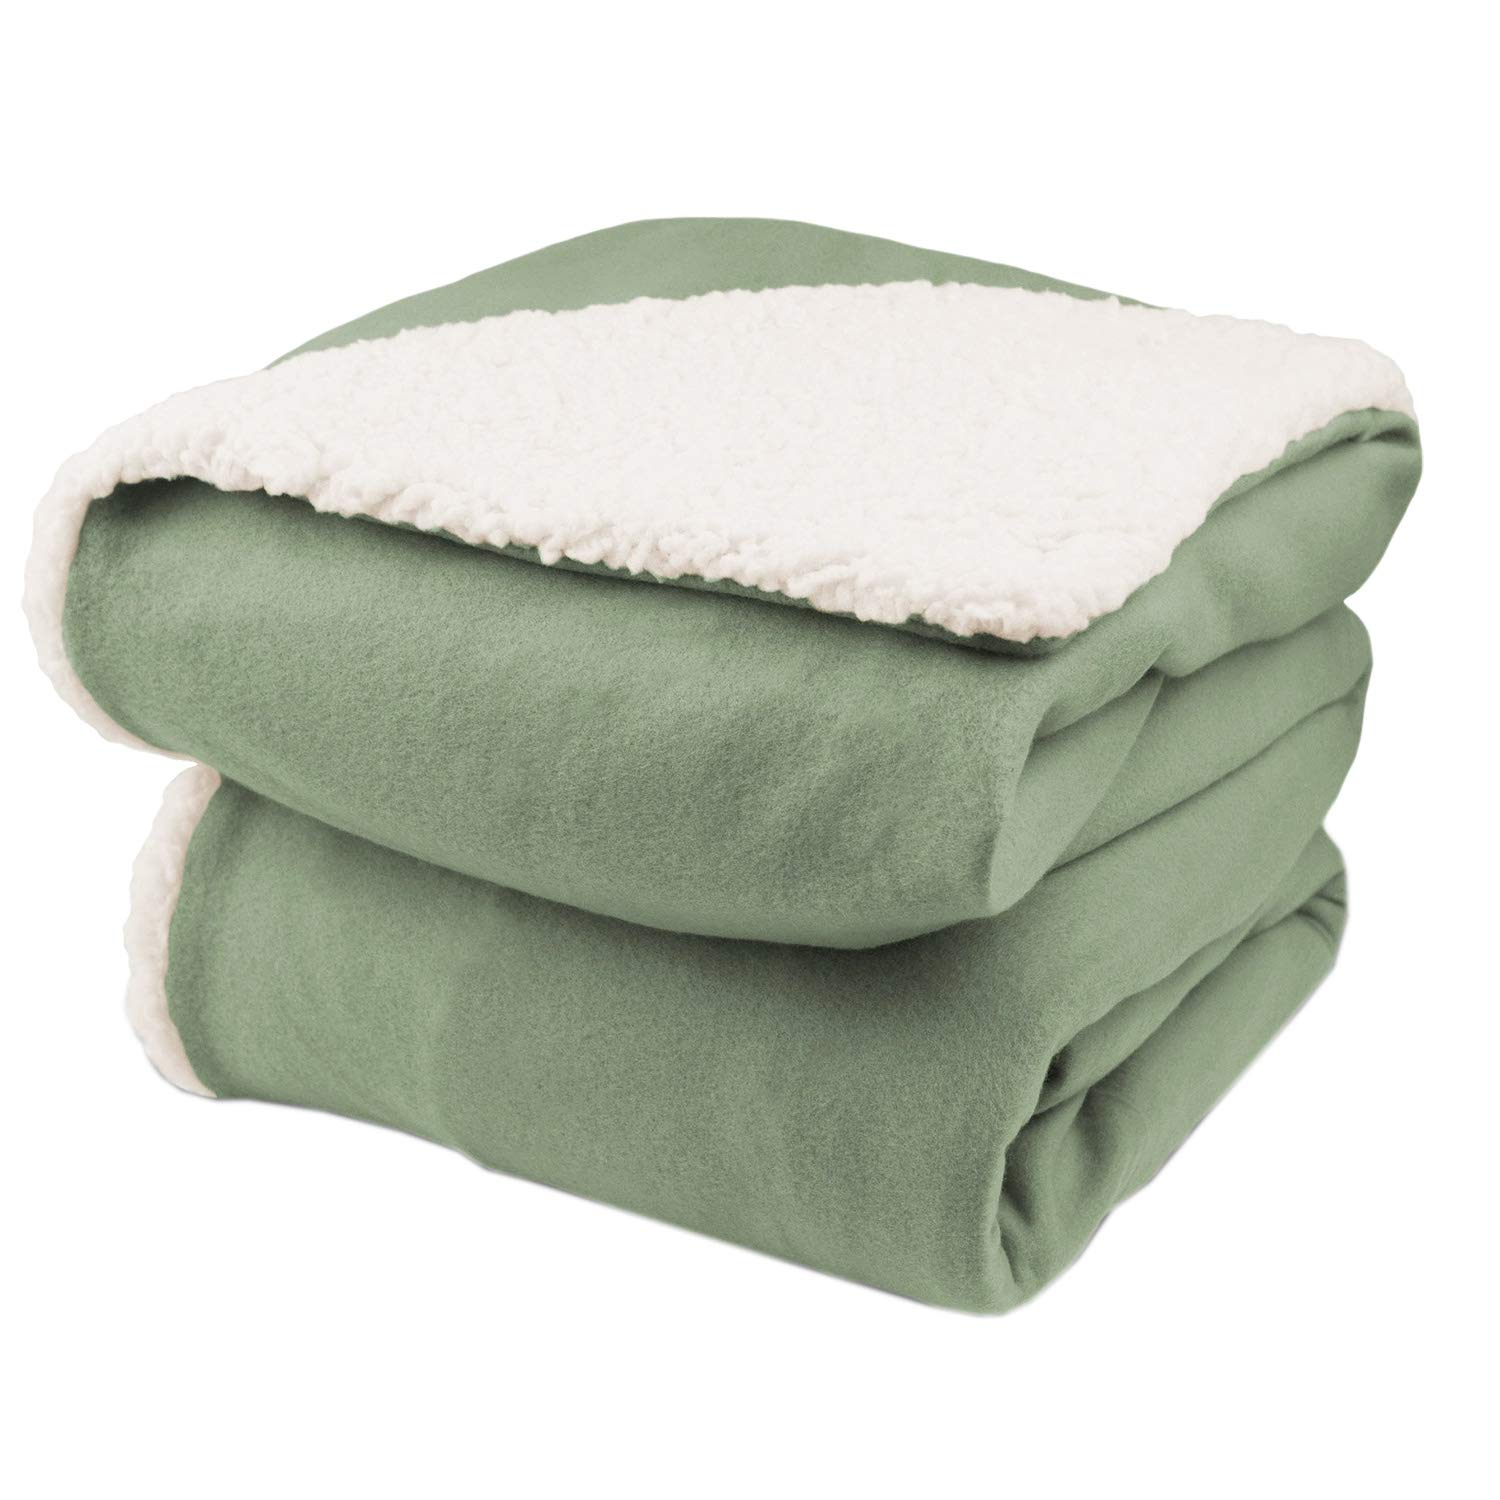 Biddeford Comfort Knit Heated Throw Blanket with Natural Sherpa Off-White COMINHKR066491